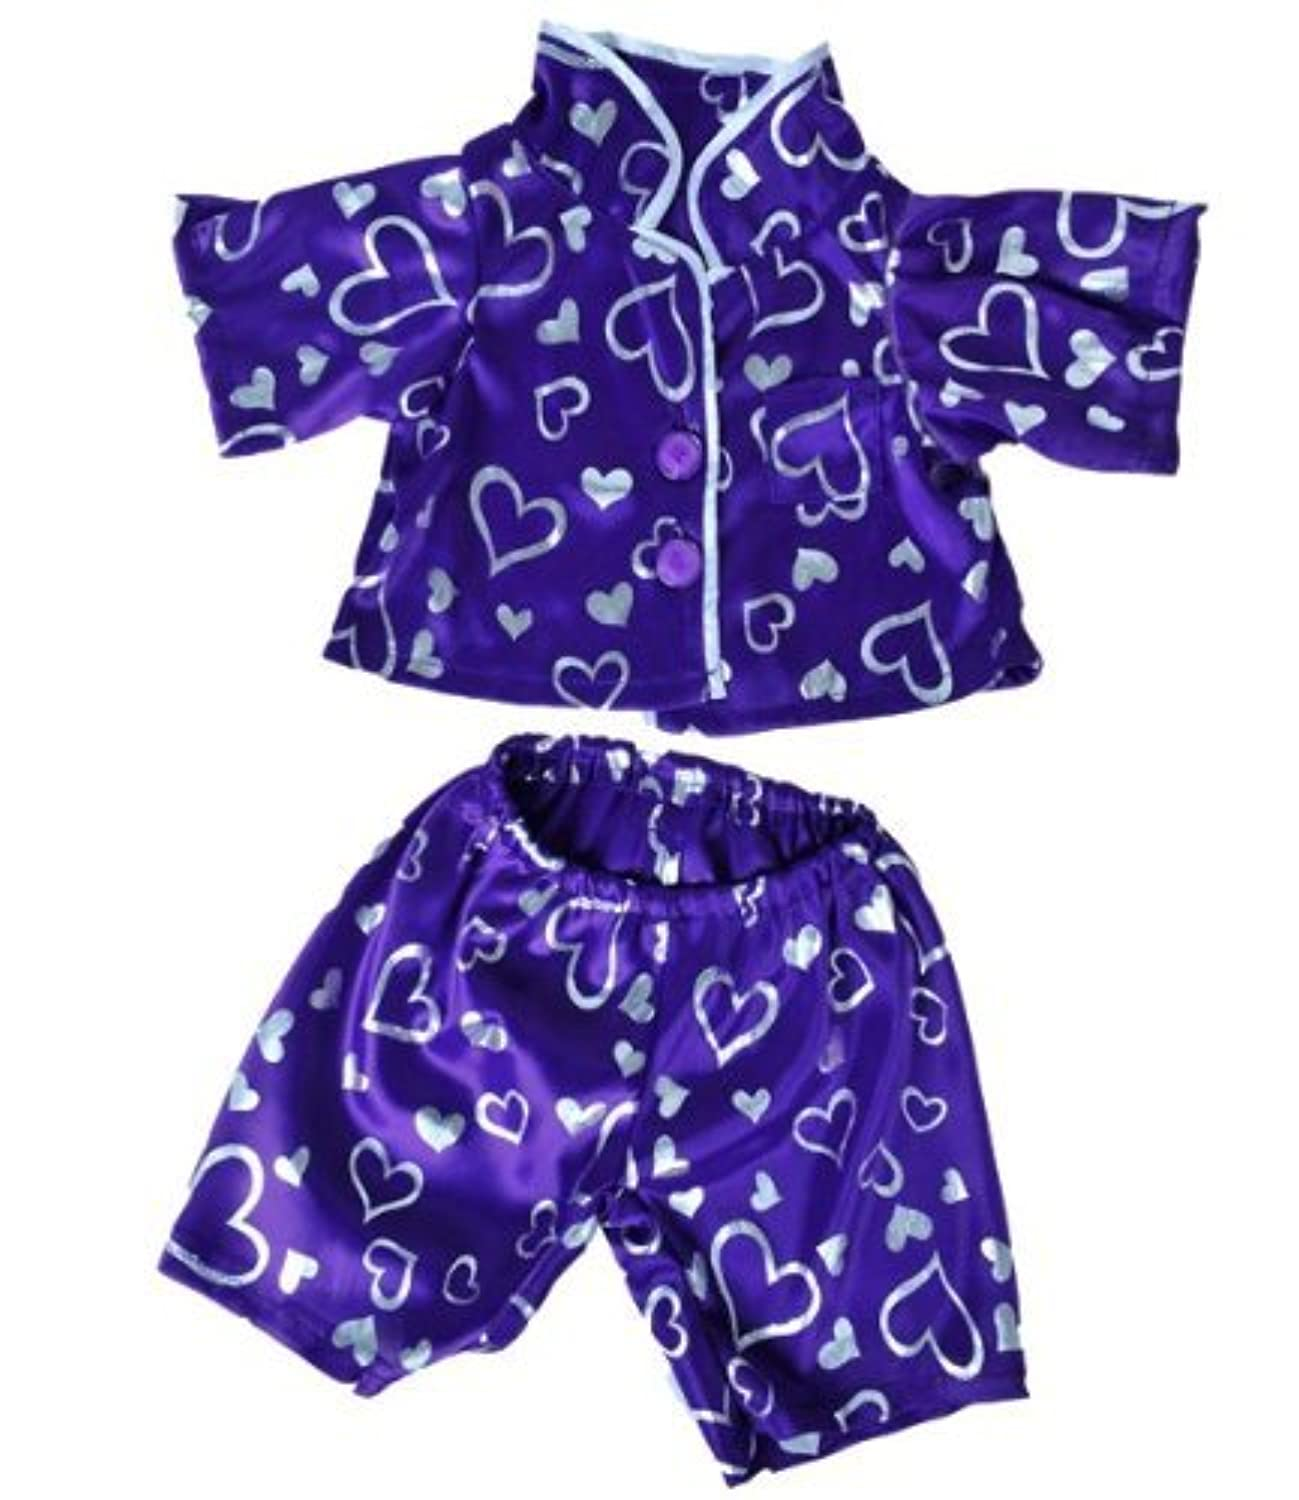 Dark Purple Silver Heart Pj's Teddy Bear Clothes Outfit Fits Most 14 - 18 Build-A-Bear, Vermont Teddy Bears, and Make Your Own Stuffed Animals by Stuffems Toy Shop